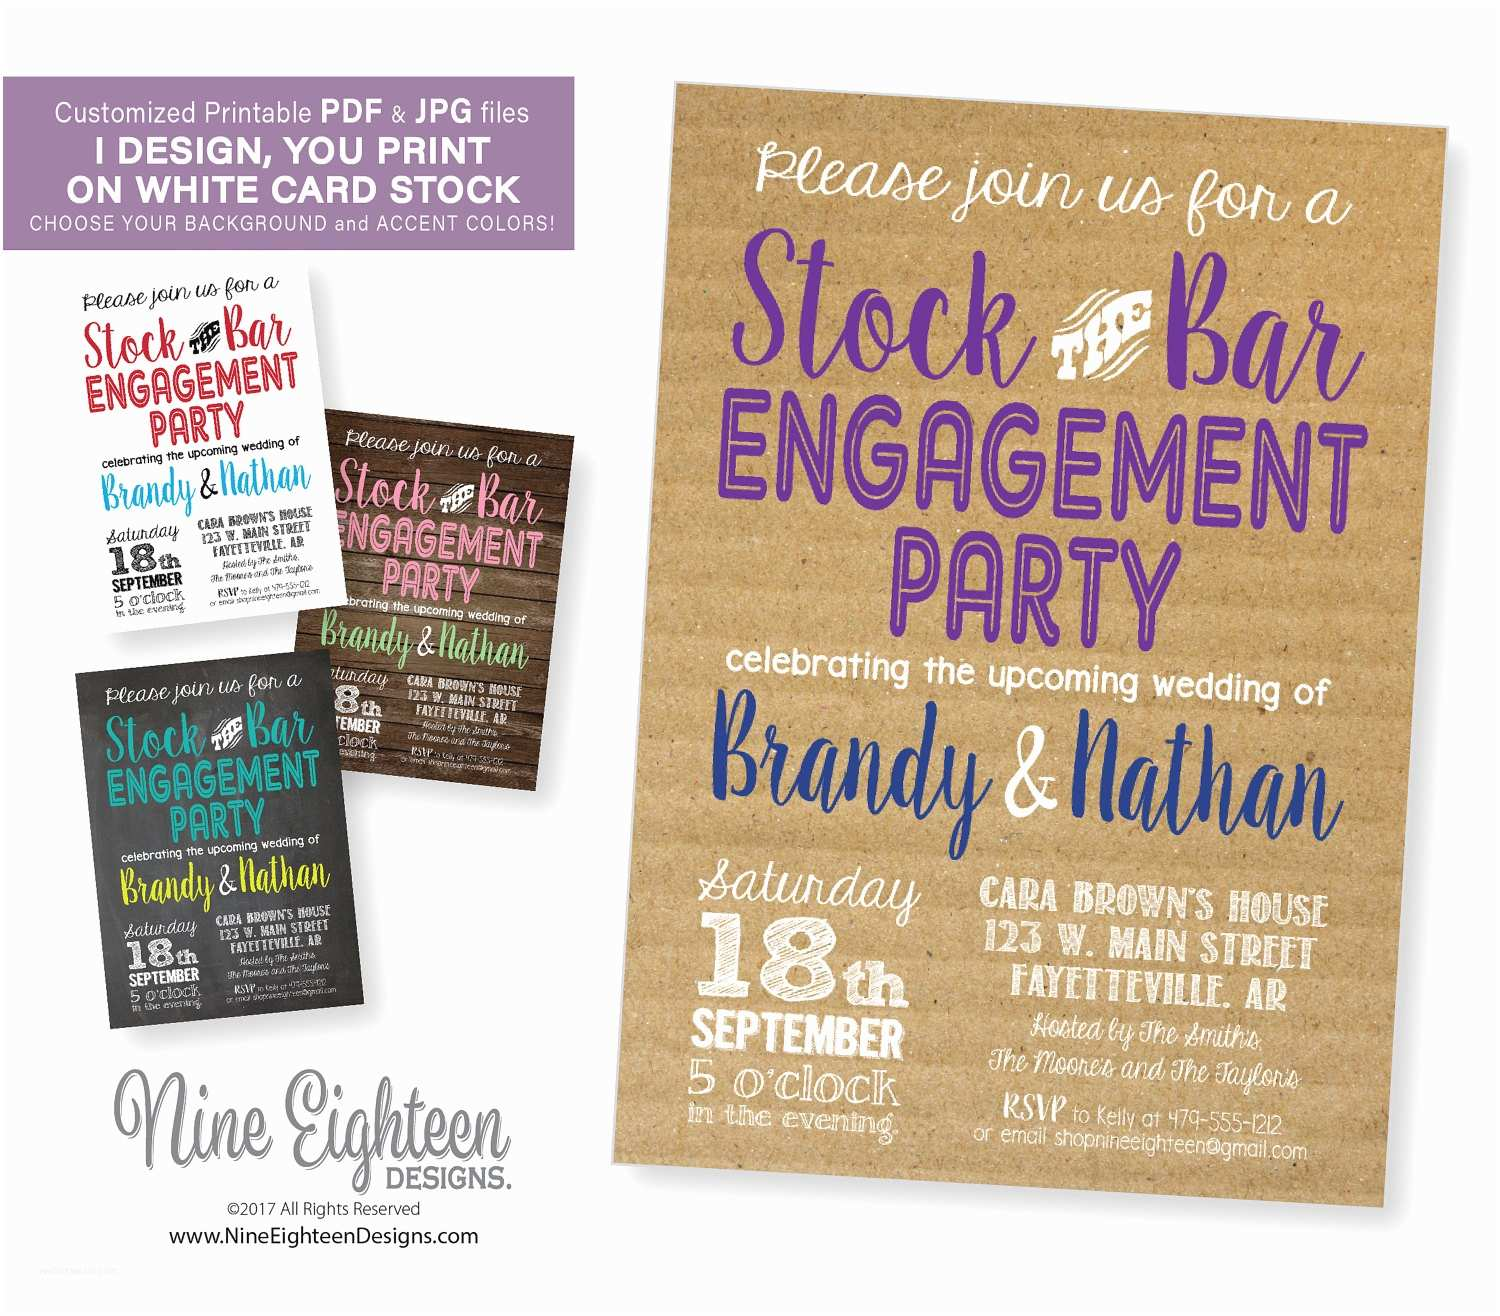 Stock the Bar Party Invitations Engagement Party Invitation Stock the Bar Party Customized